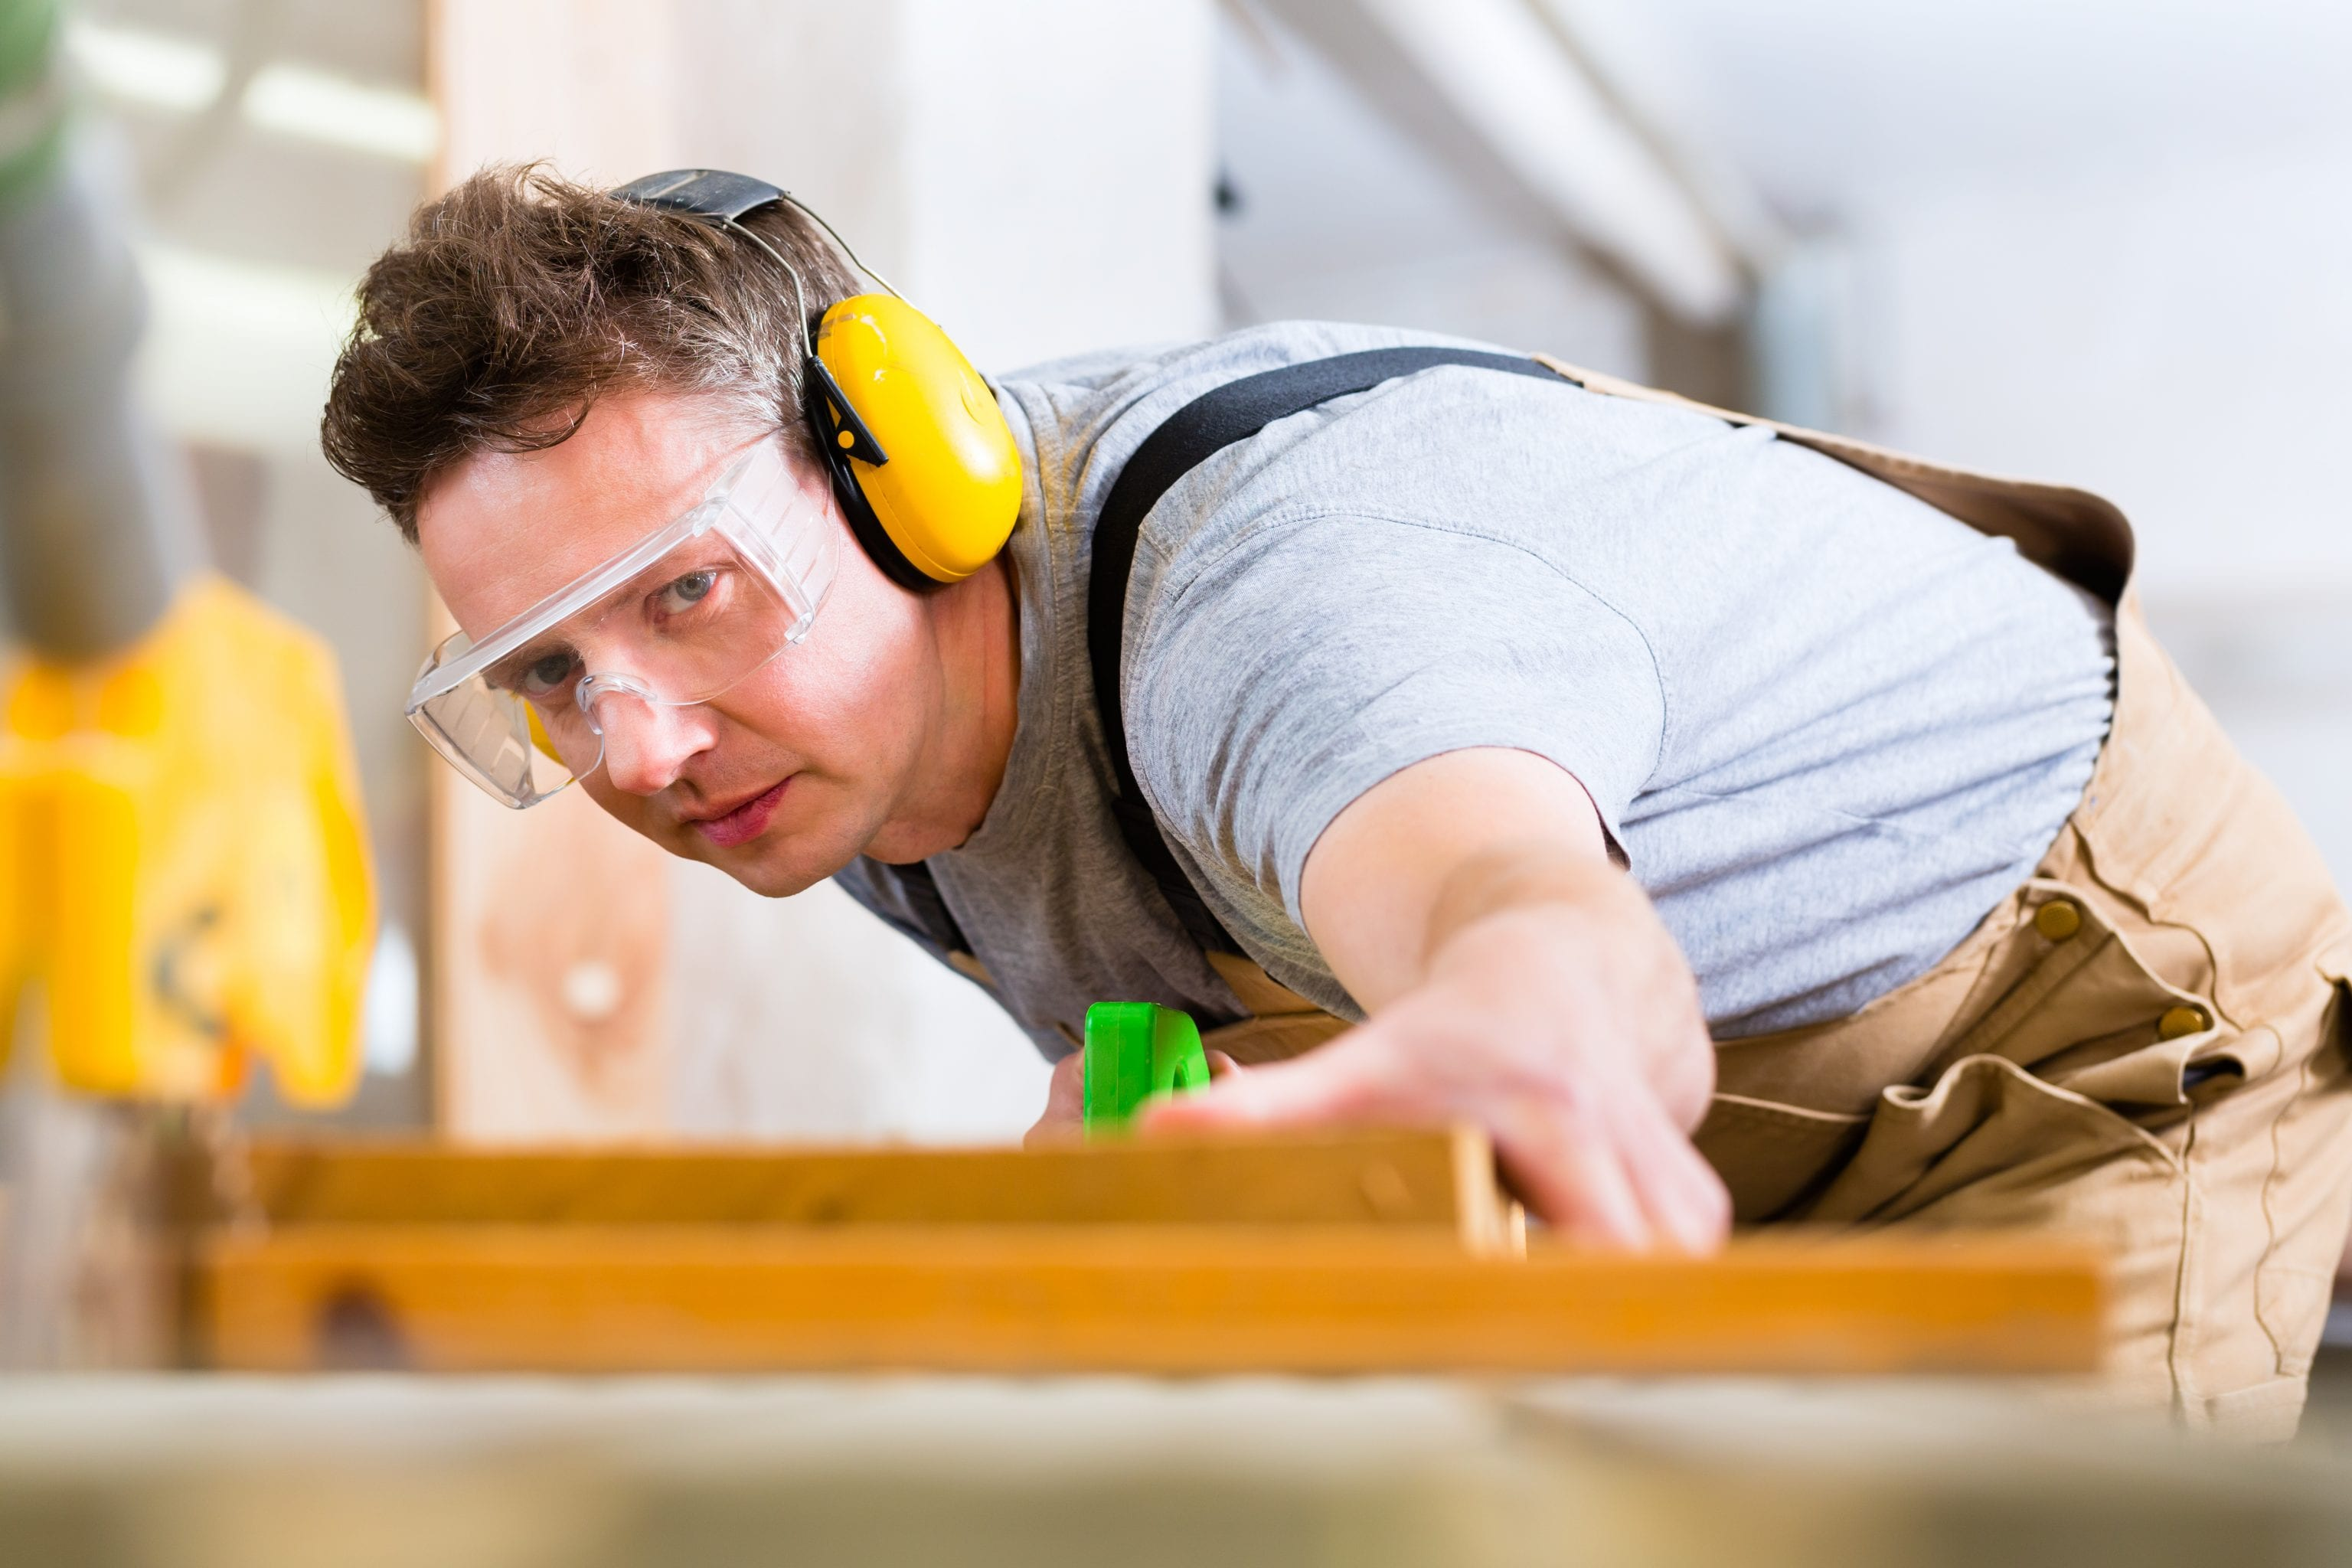 man in carpentry shop sawing wood and wearing ear protection